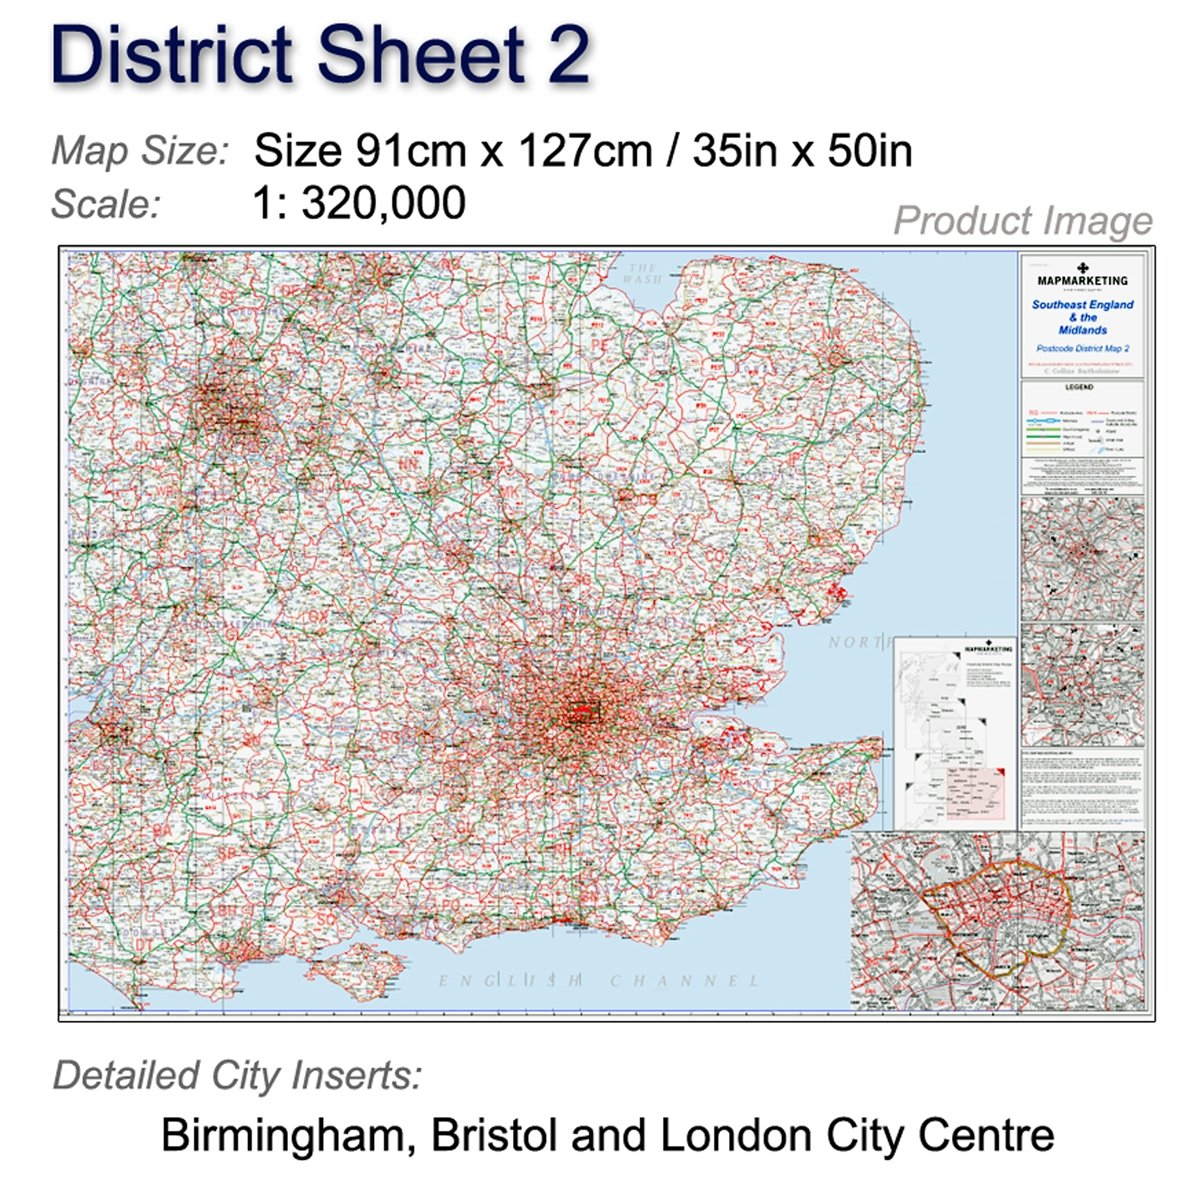 Bristol On The Map Of England.Postcode District Map 2 England And The Midlands Birmingham